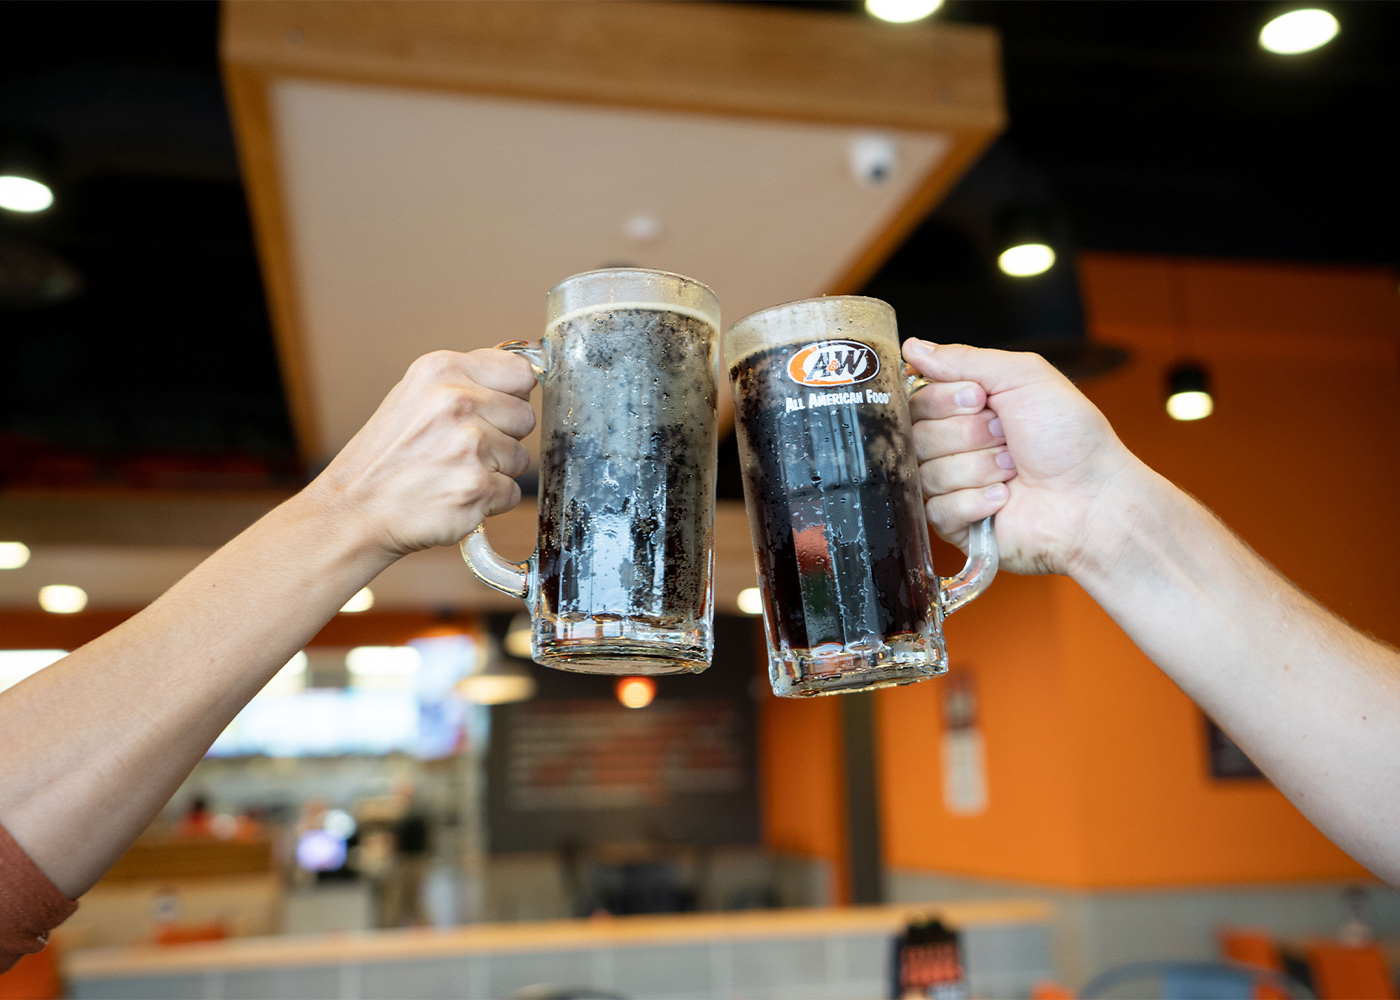 Two people toasting with mugs of A&W Root Beer inside an A&W Restaurant.